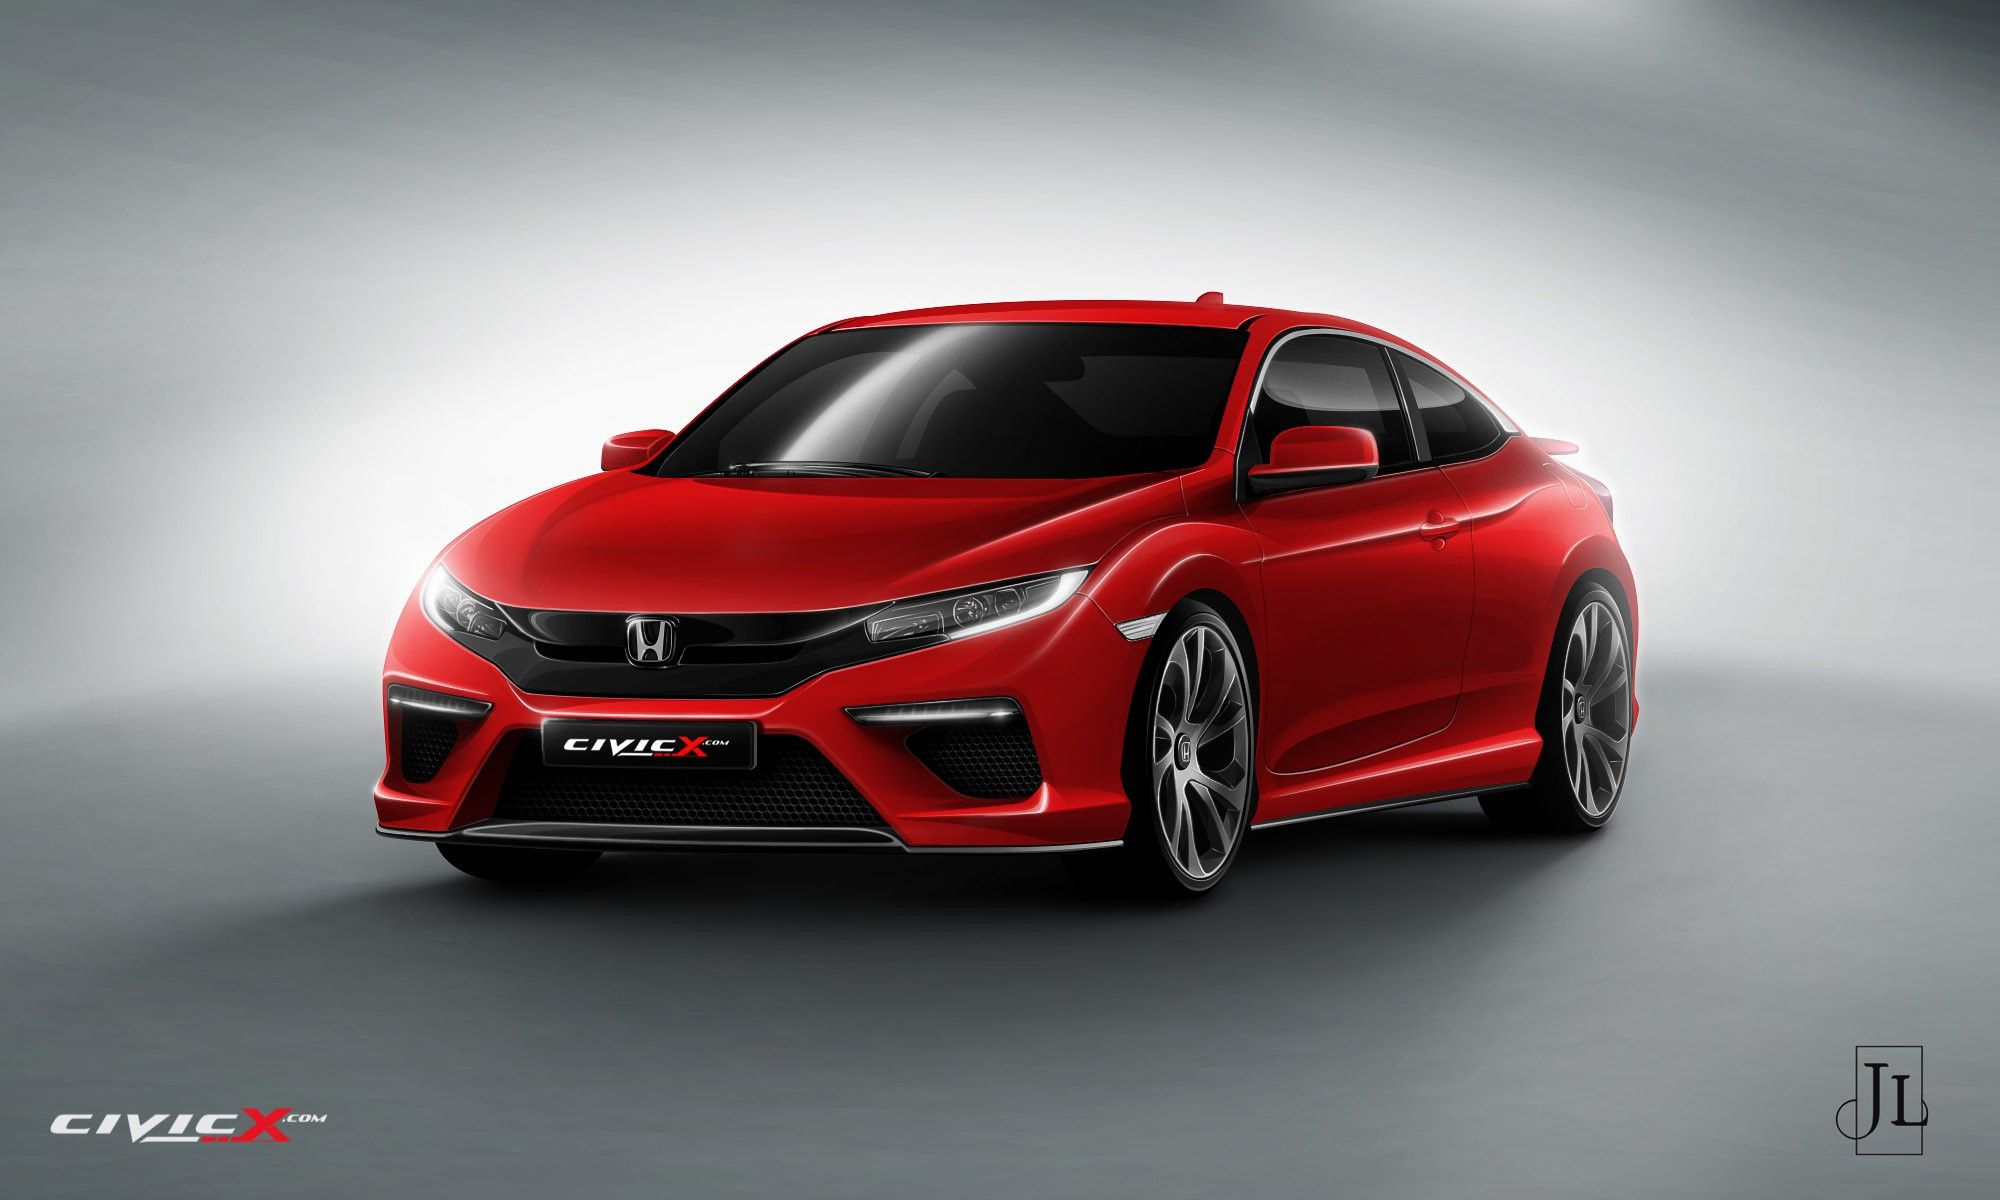 41 Honda Civic Coupe Type R 2017 Jl8u in 2020 Honda